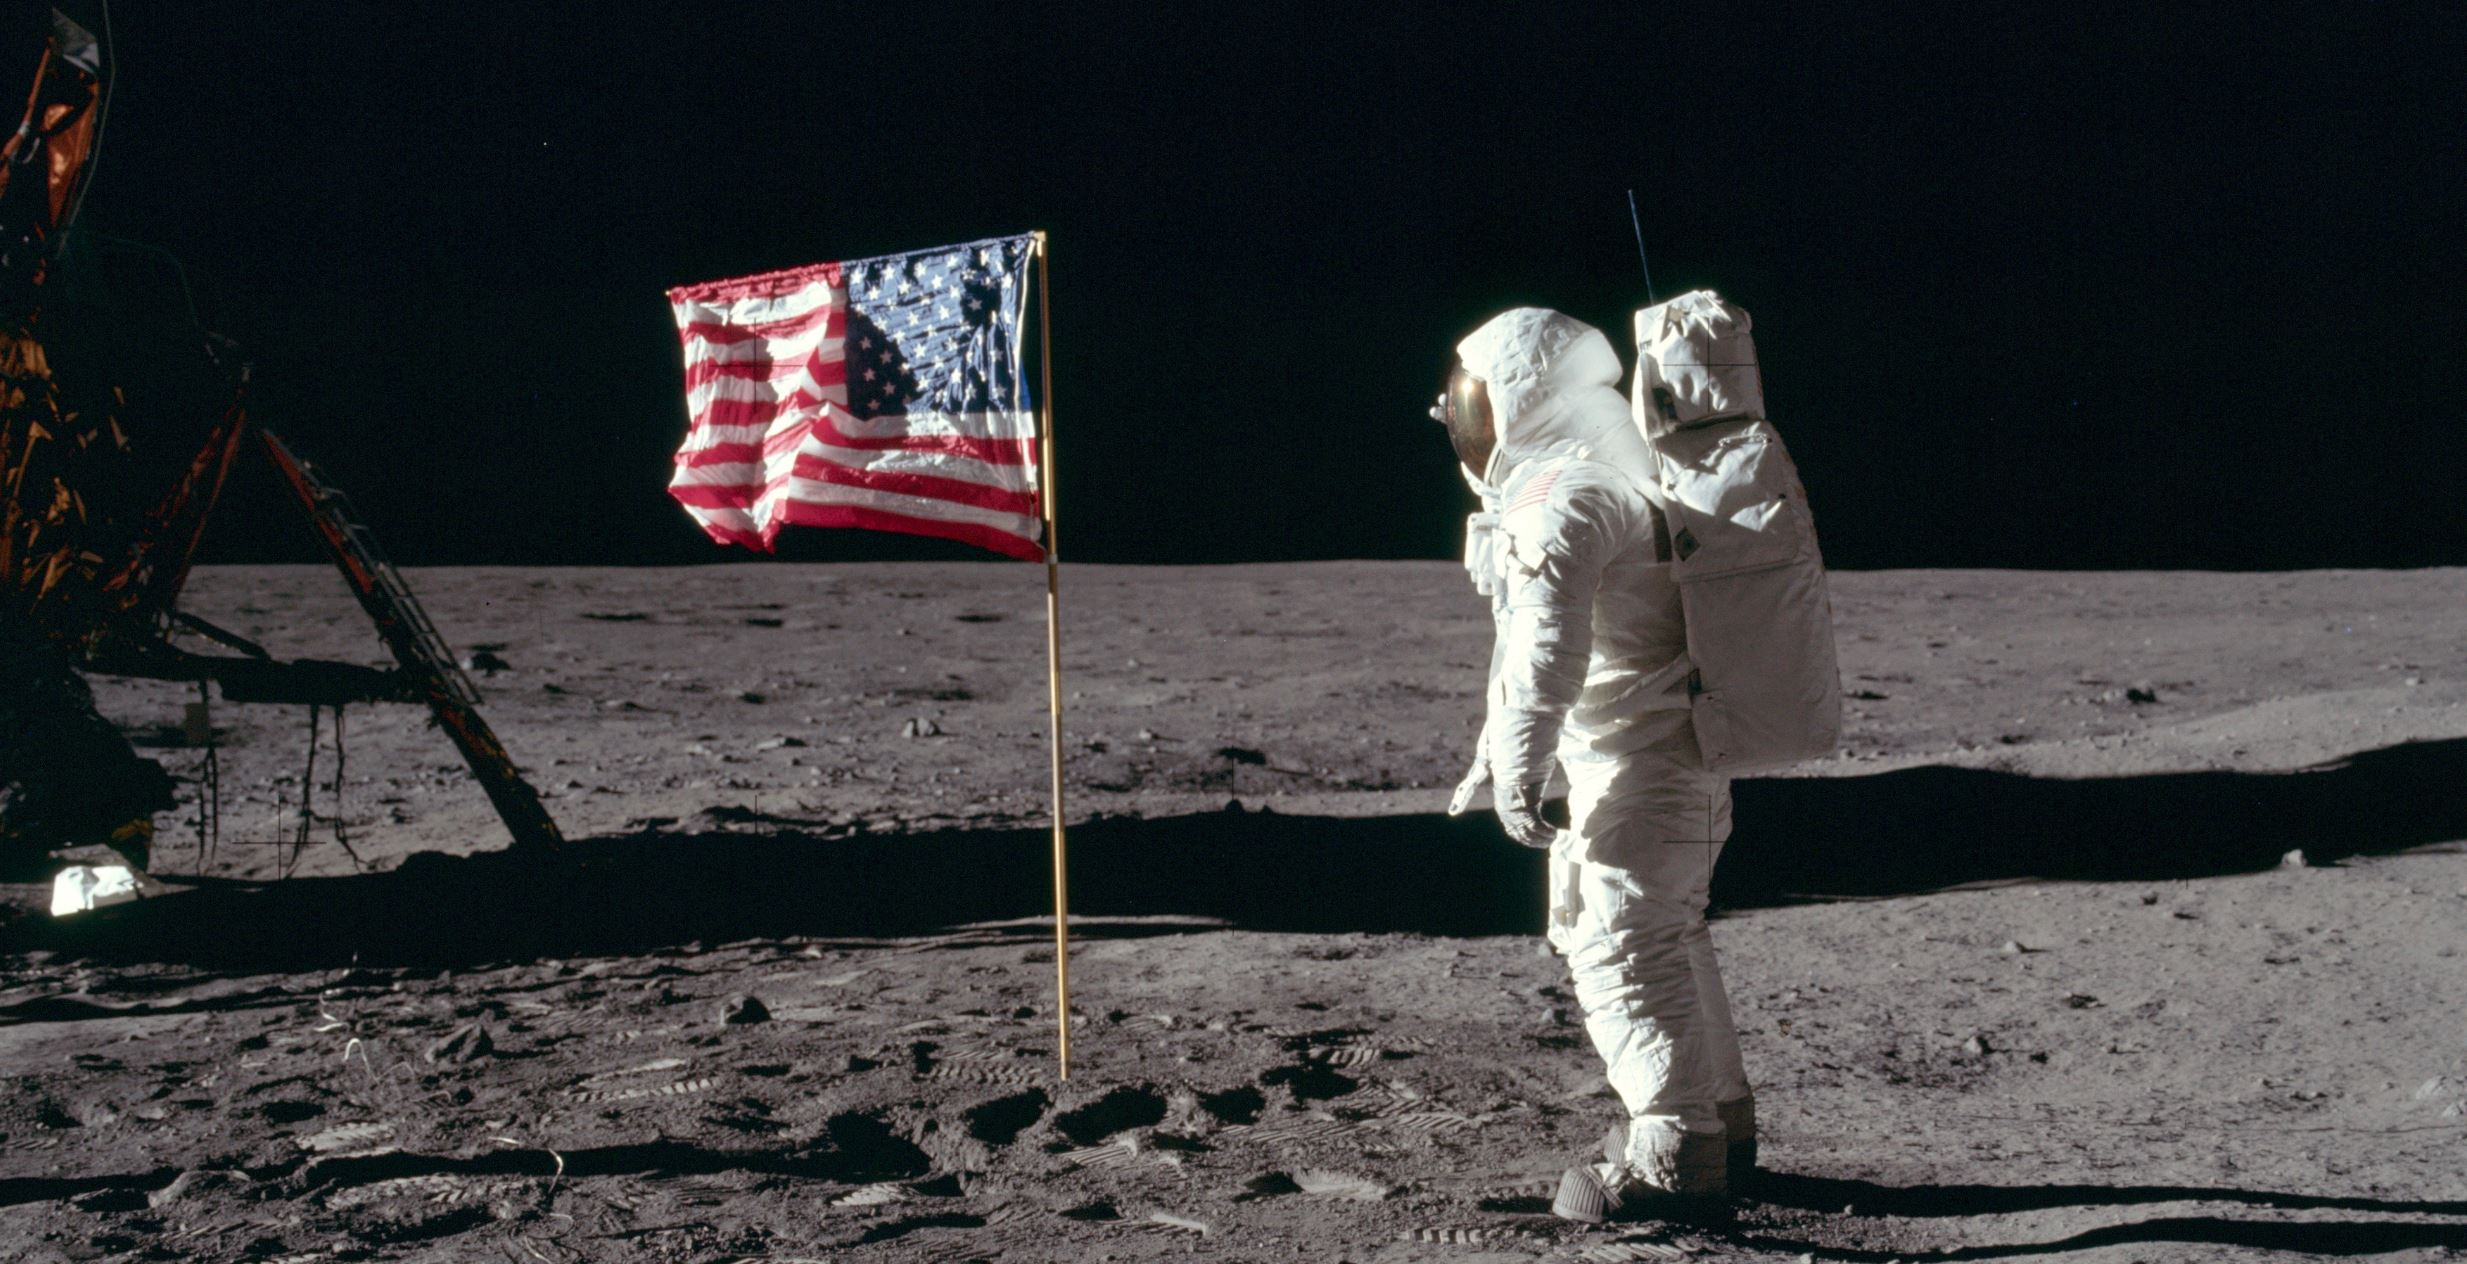 Territorial claim? US astronaut Buzz Aldrin salutes the American flag. - Image Credit:  NASA./ Neil A. Armstrong via Wikimedia Commons